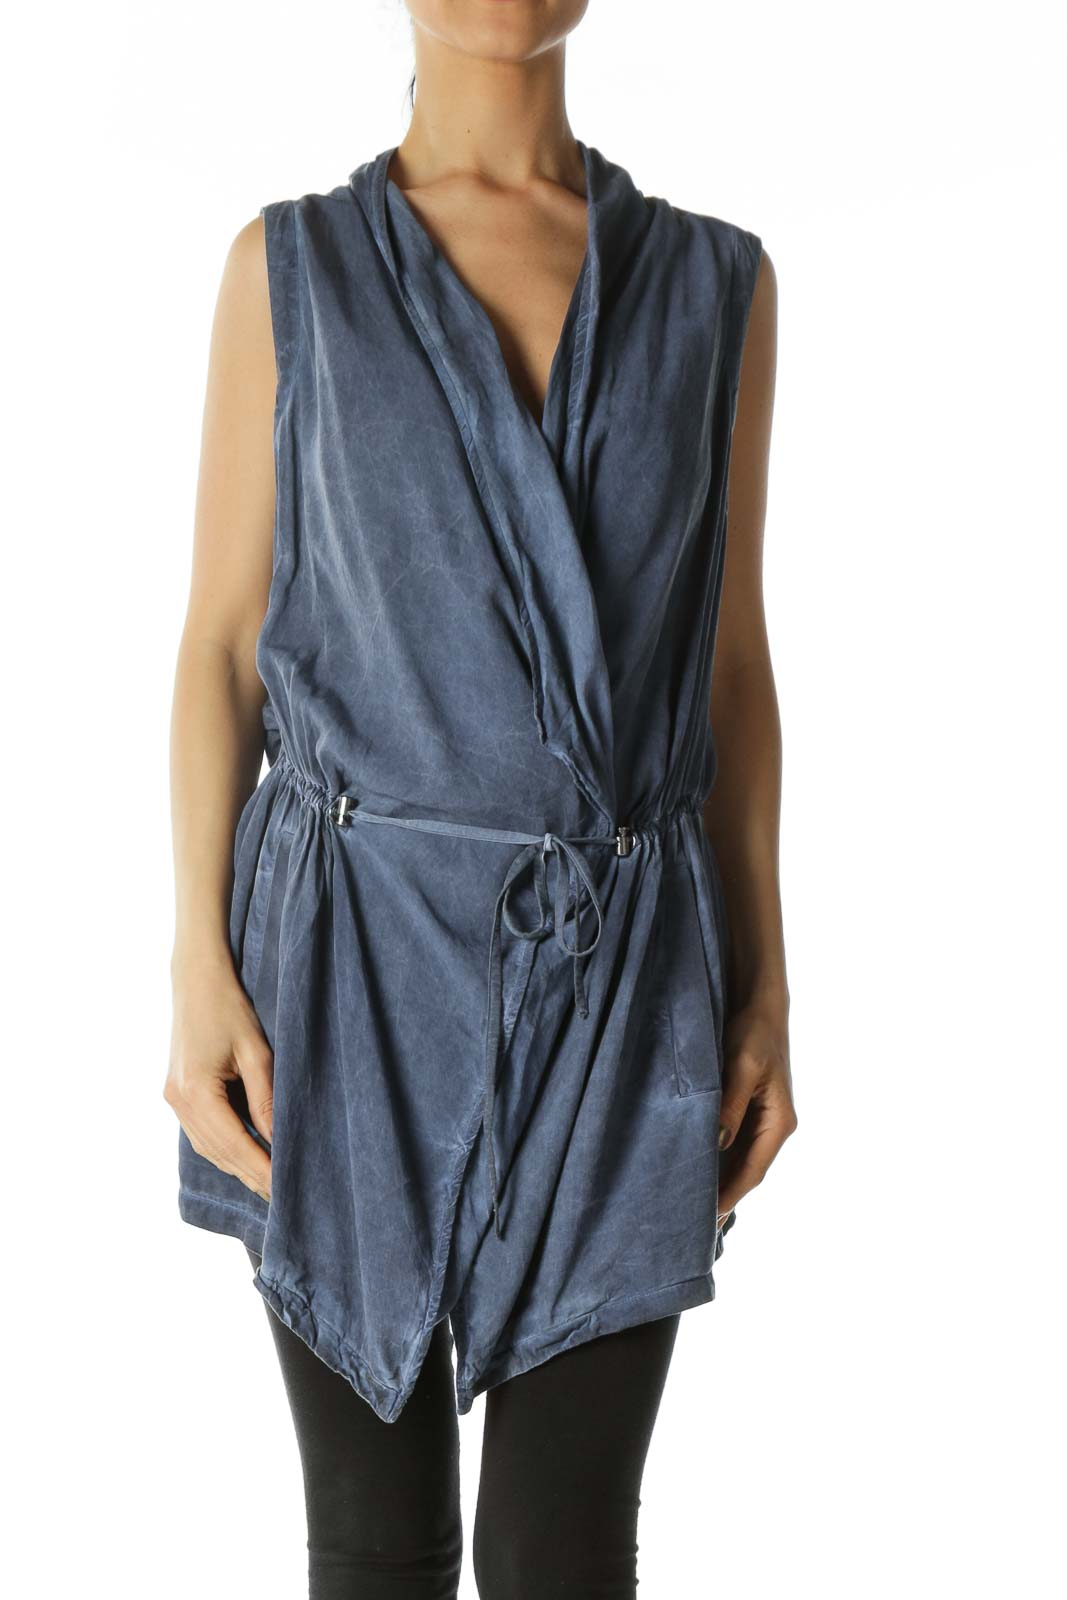 Denim Blue Waist Tie Vest Dress